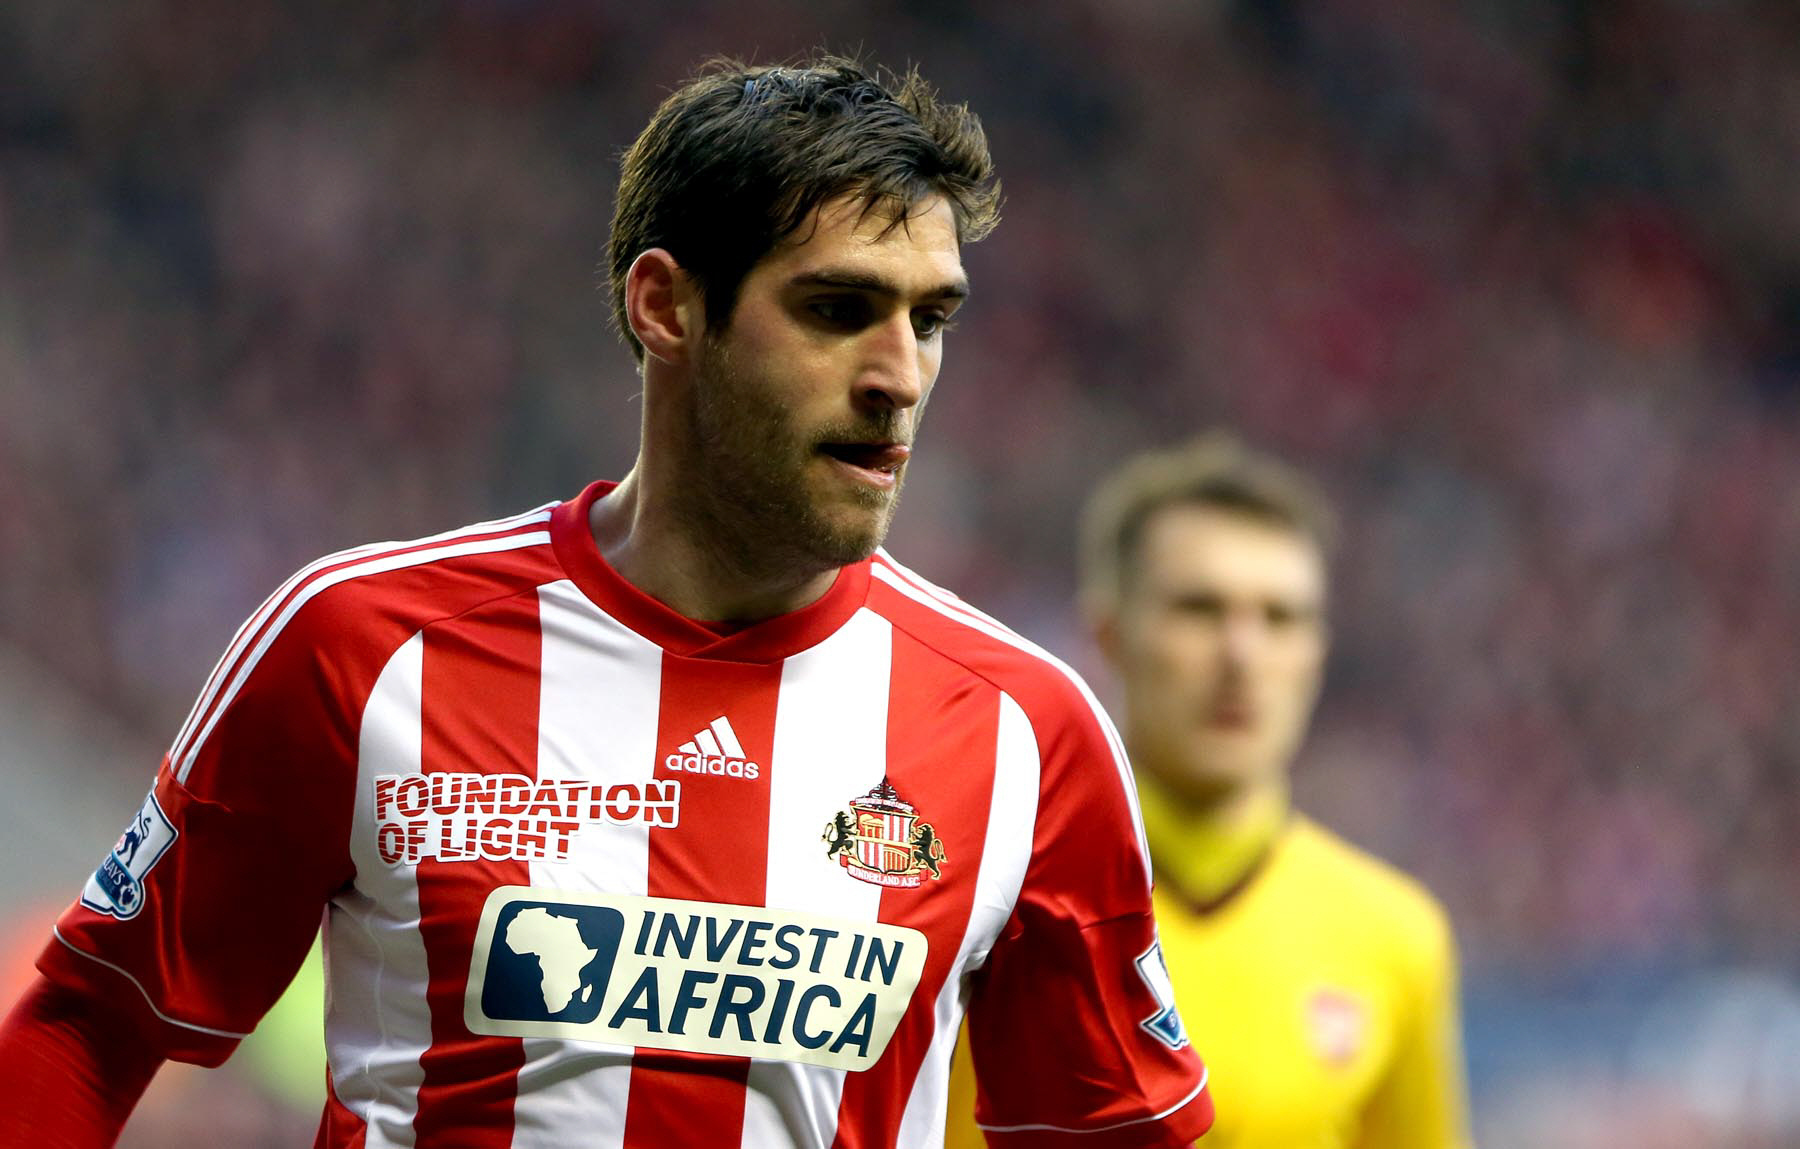 HEADING BACK: Danny Graham is set to start pre-season training with Sunderland after finishing a loan spell at Middlesbrough